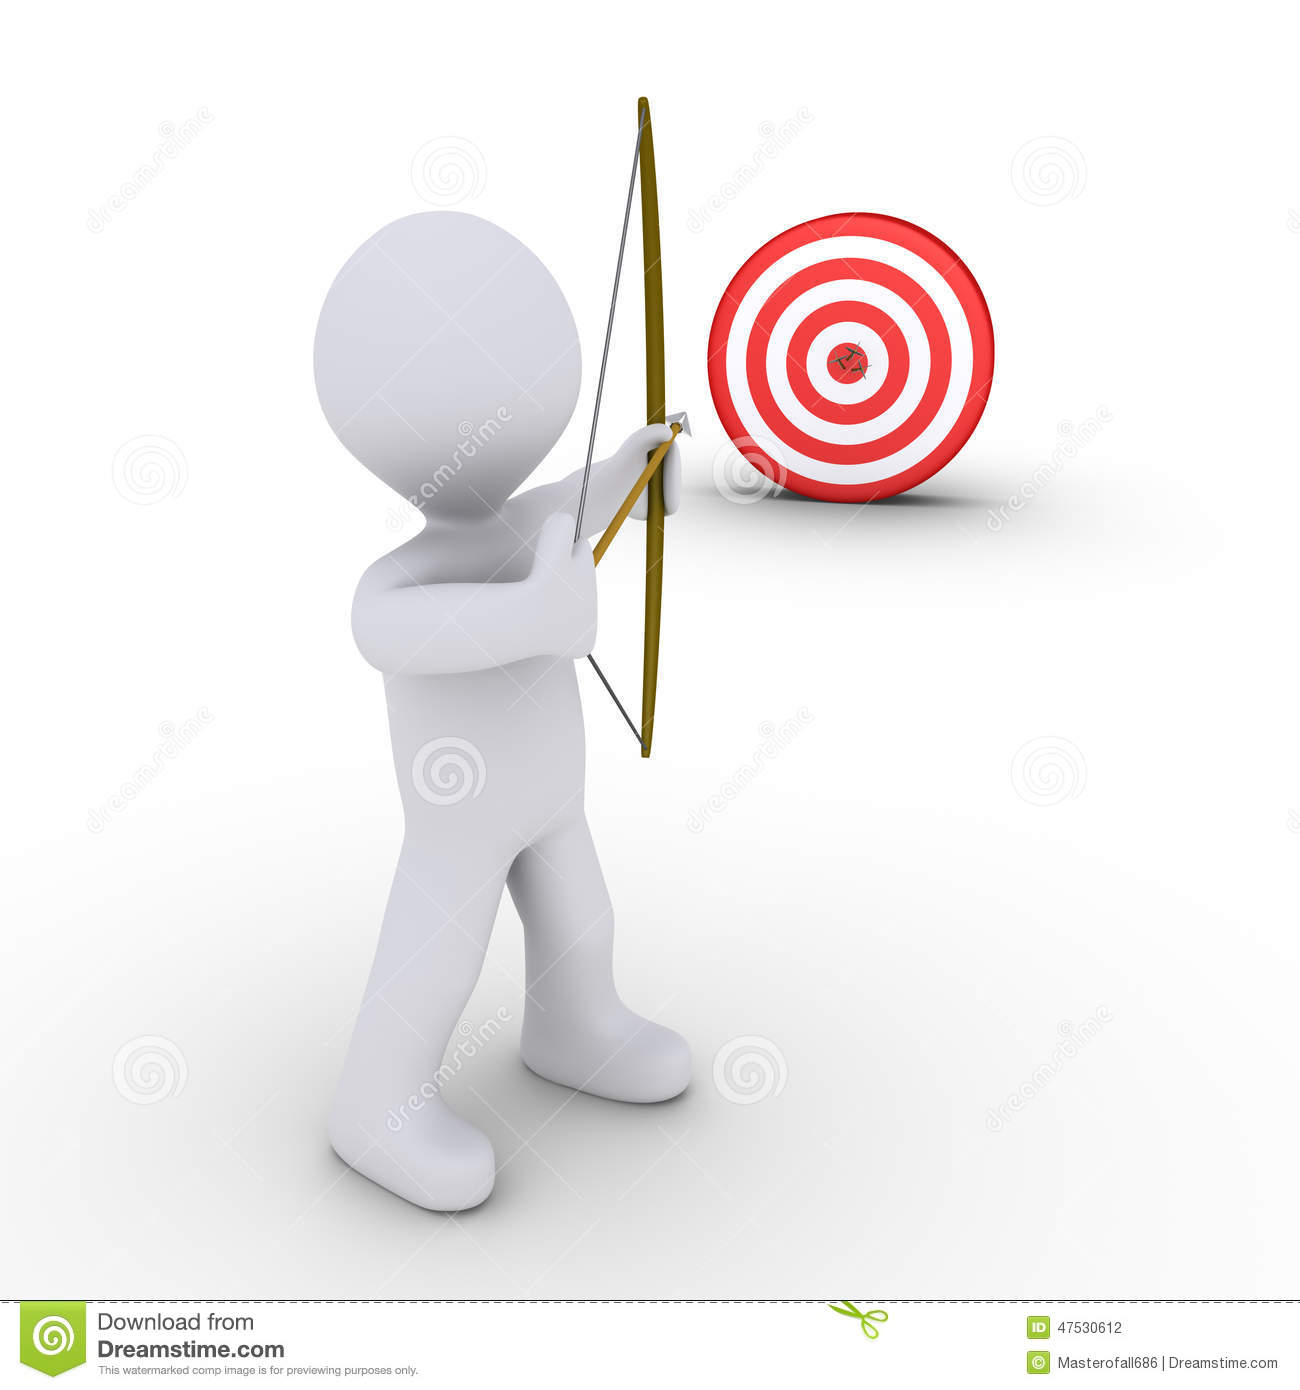 archer aiming at a target stock illustration illustration bow and arrow target clipart clipart images of bow and arrow